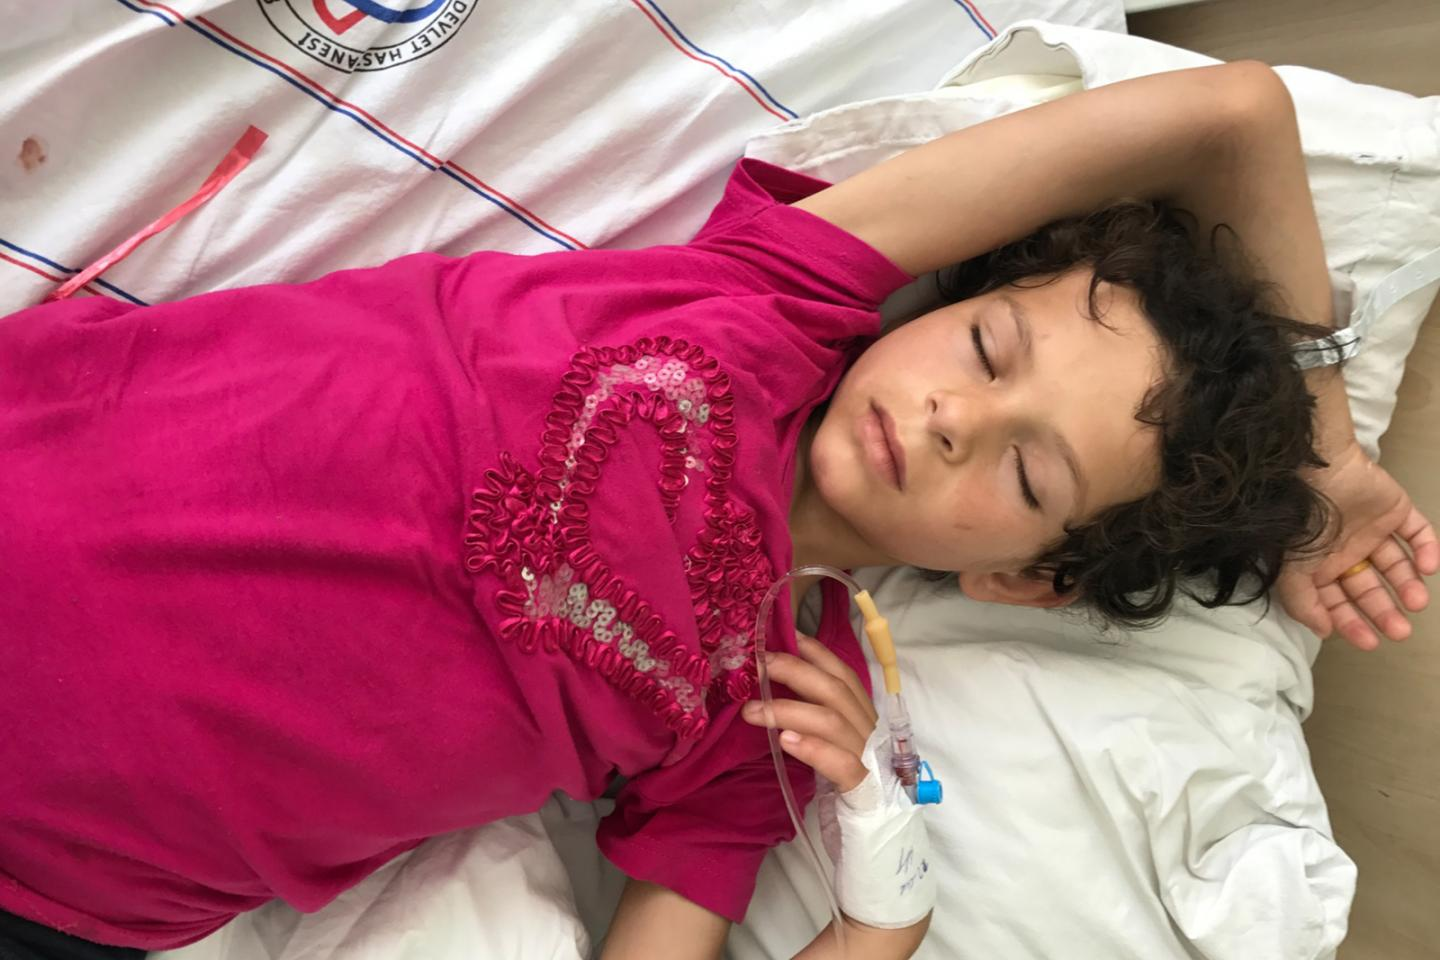 Emine, 7, sleeps in the emergency room at the hospital in Adana, Turkey. She was injured when a bomb hit her family's home in Syria, killing her mother who was pregnant at the time.